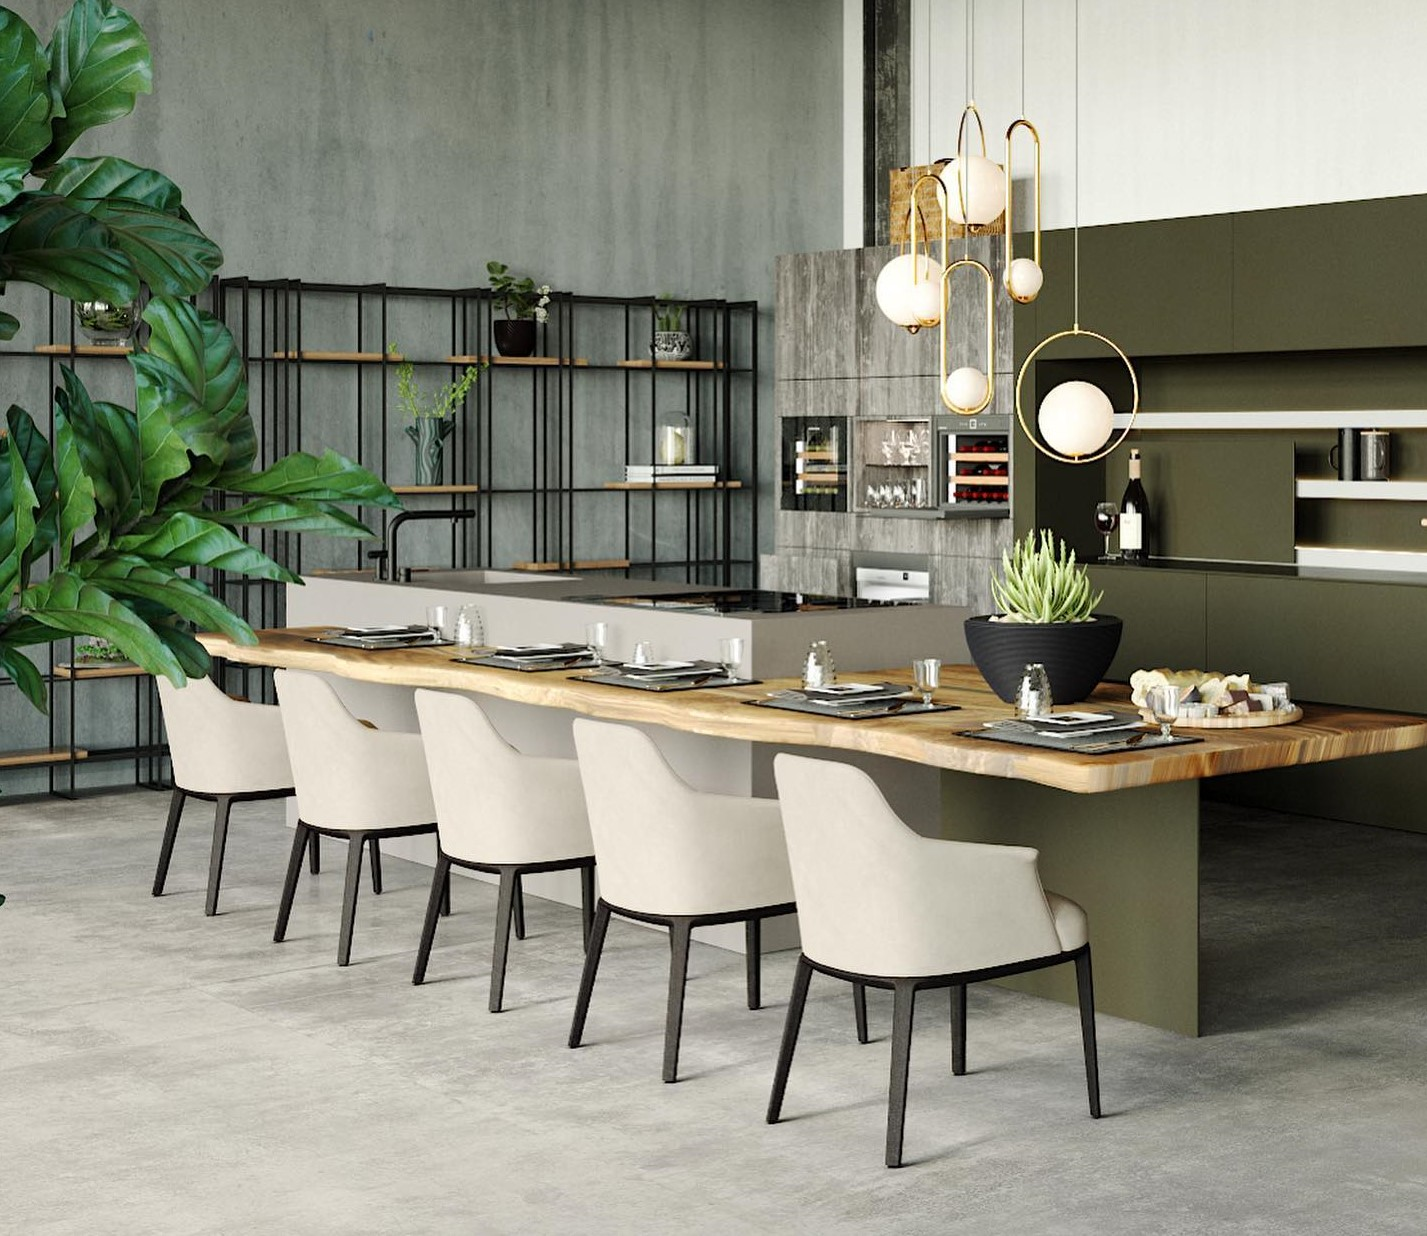 2021 Kitchen Trends include green cabinets